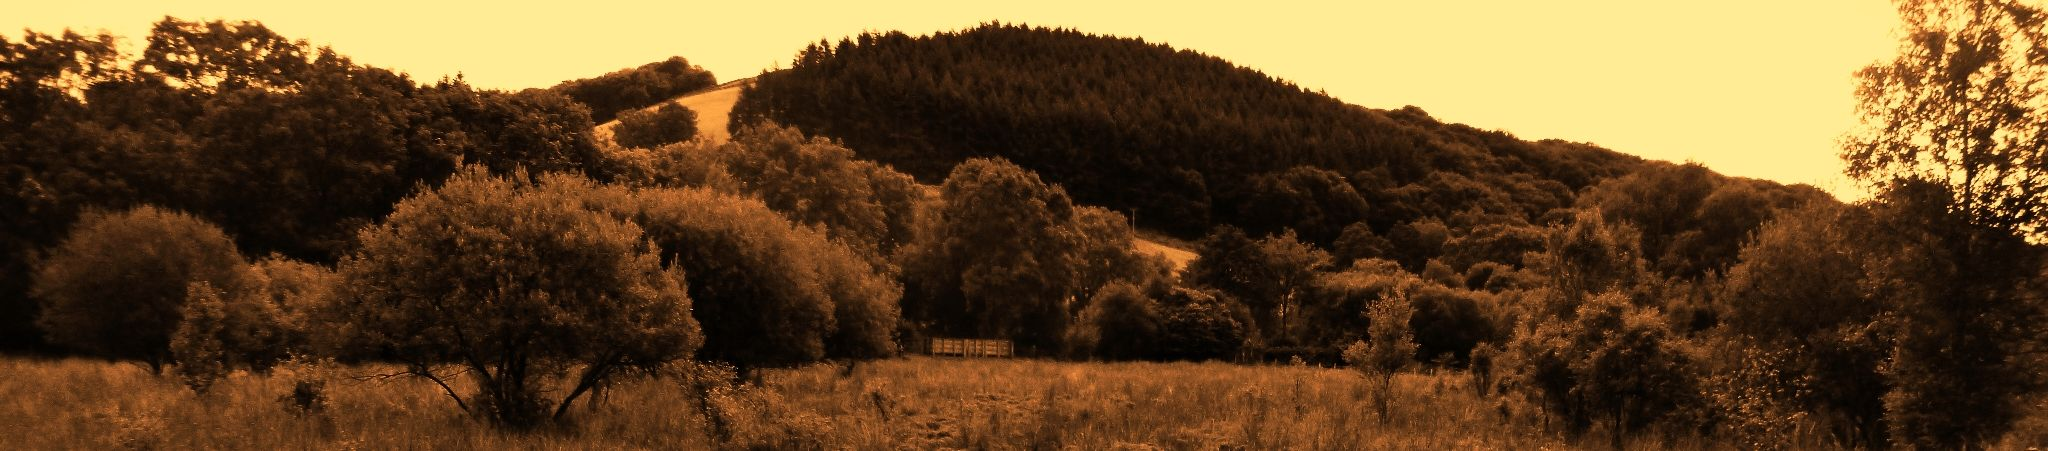 tregaron bog wales by chris.adams.3557